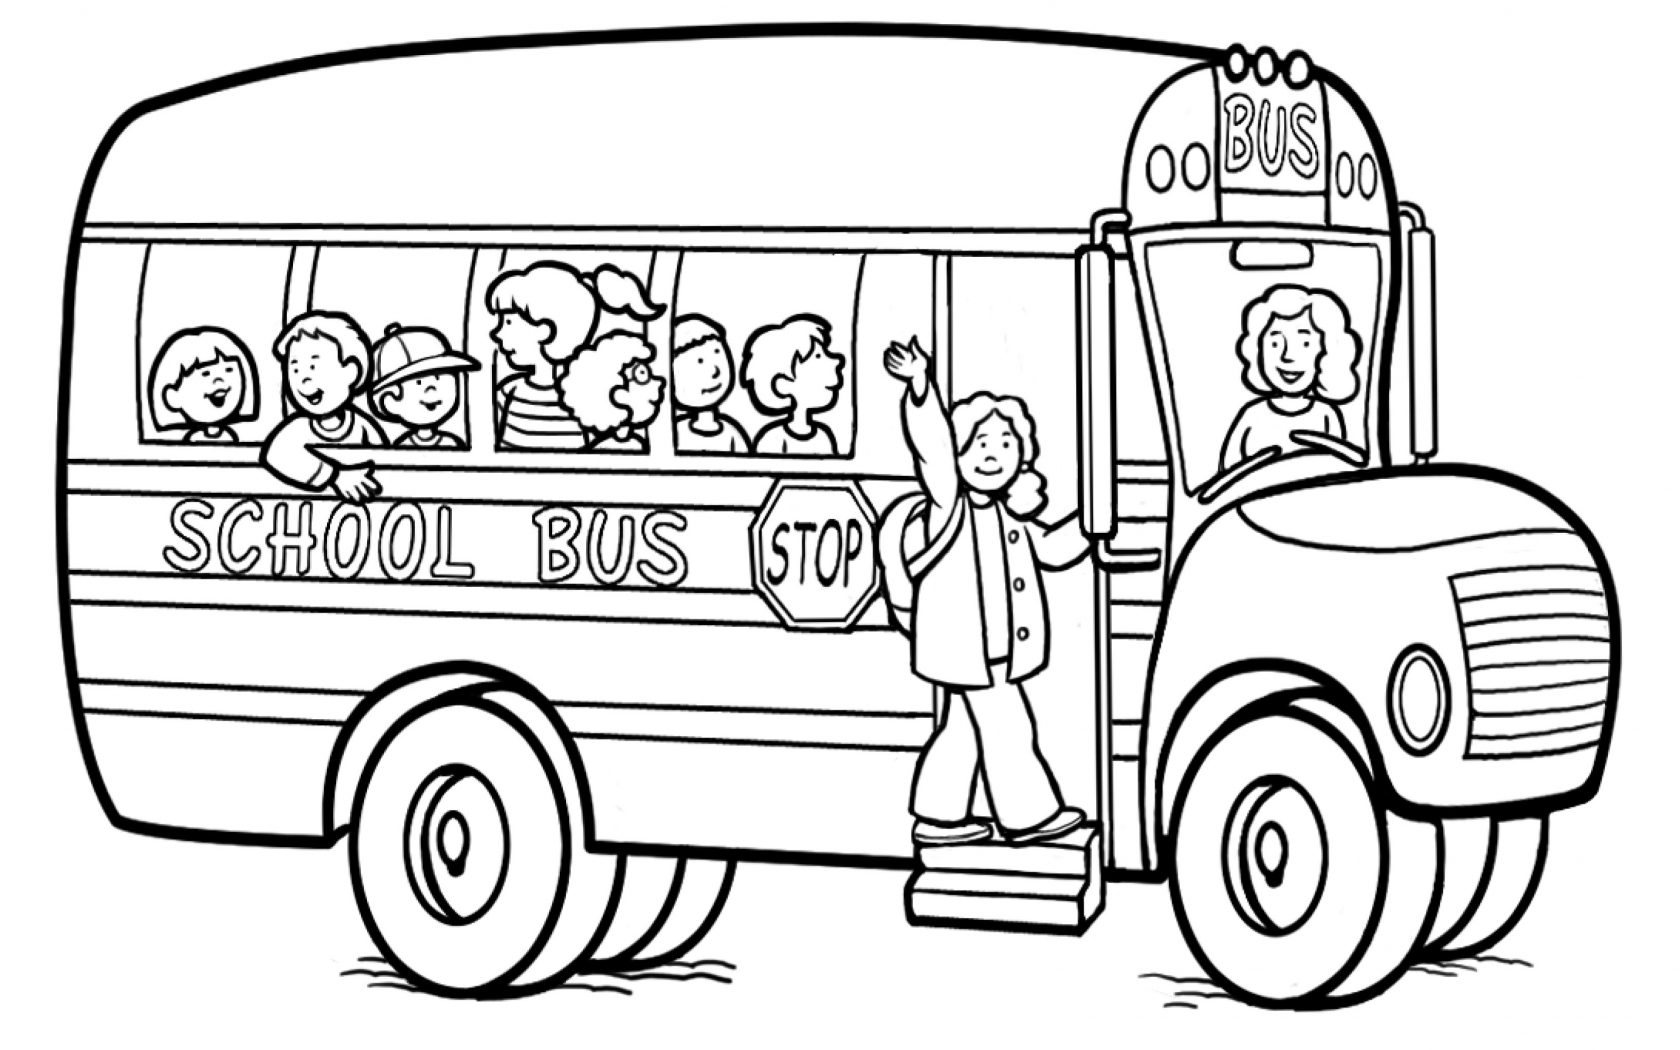 1680x1050 School Bus Coloring Pages Safety Sheets Arilitv Magic School